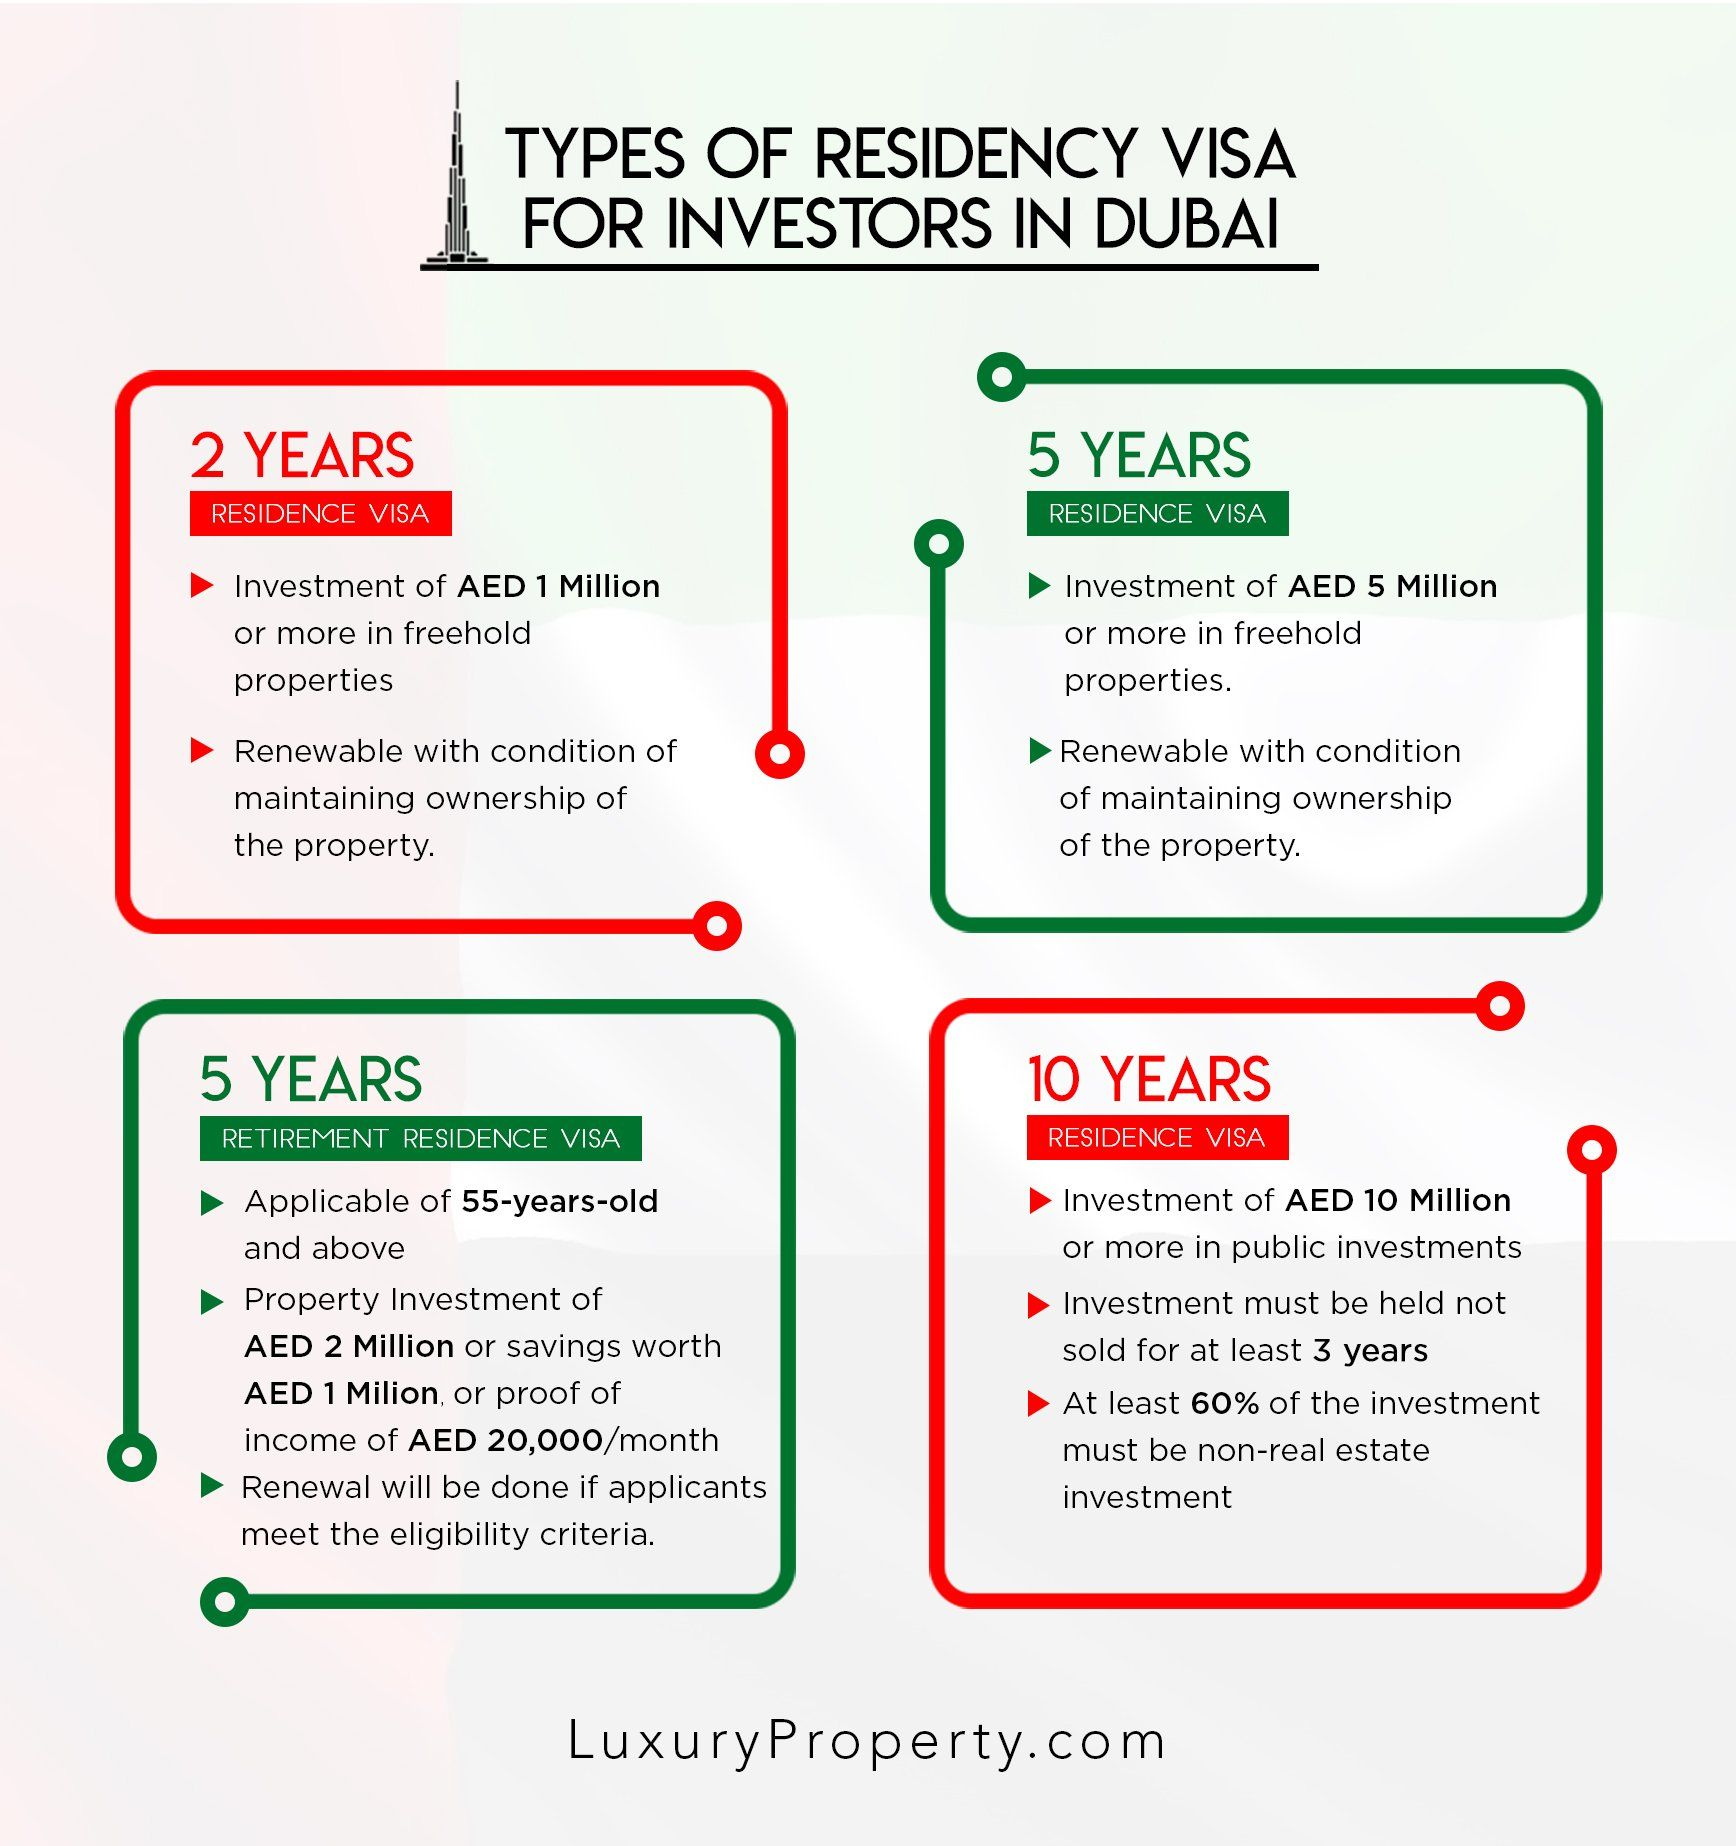 A Guide To Uae Residence Visas For Investors Investors Buying Property Dubai Real Estate